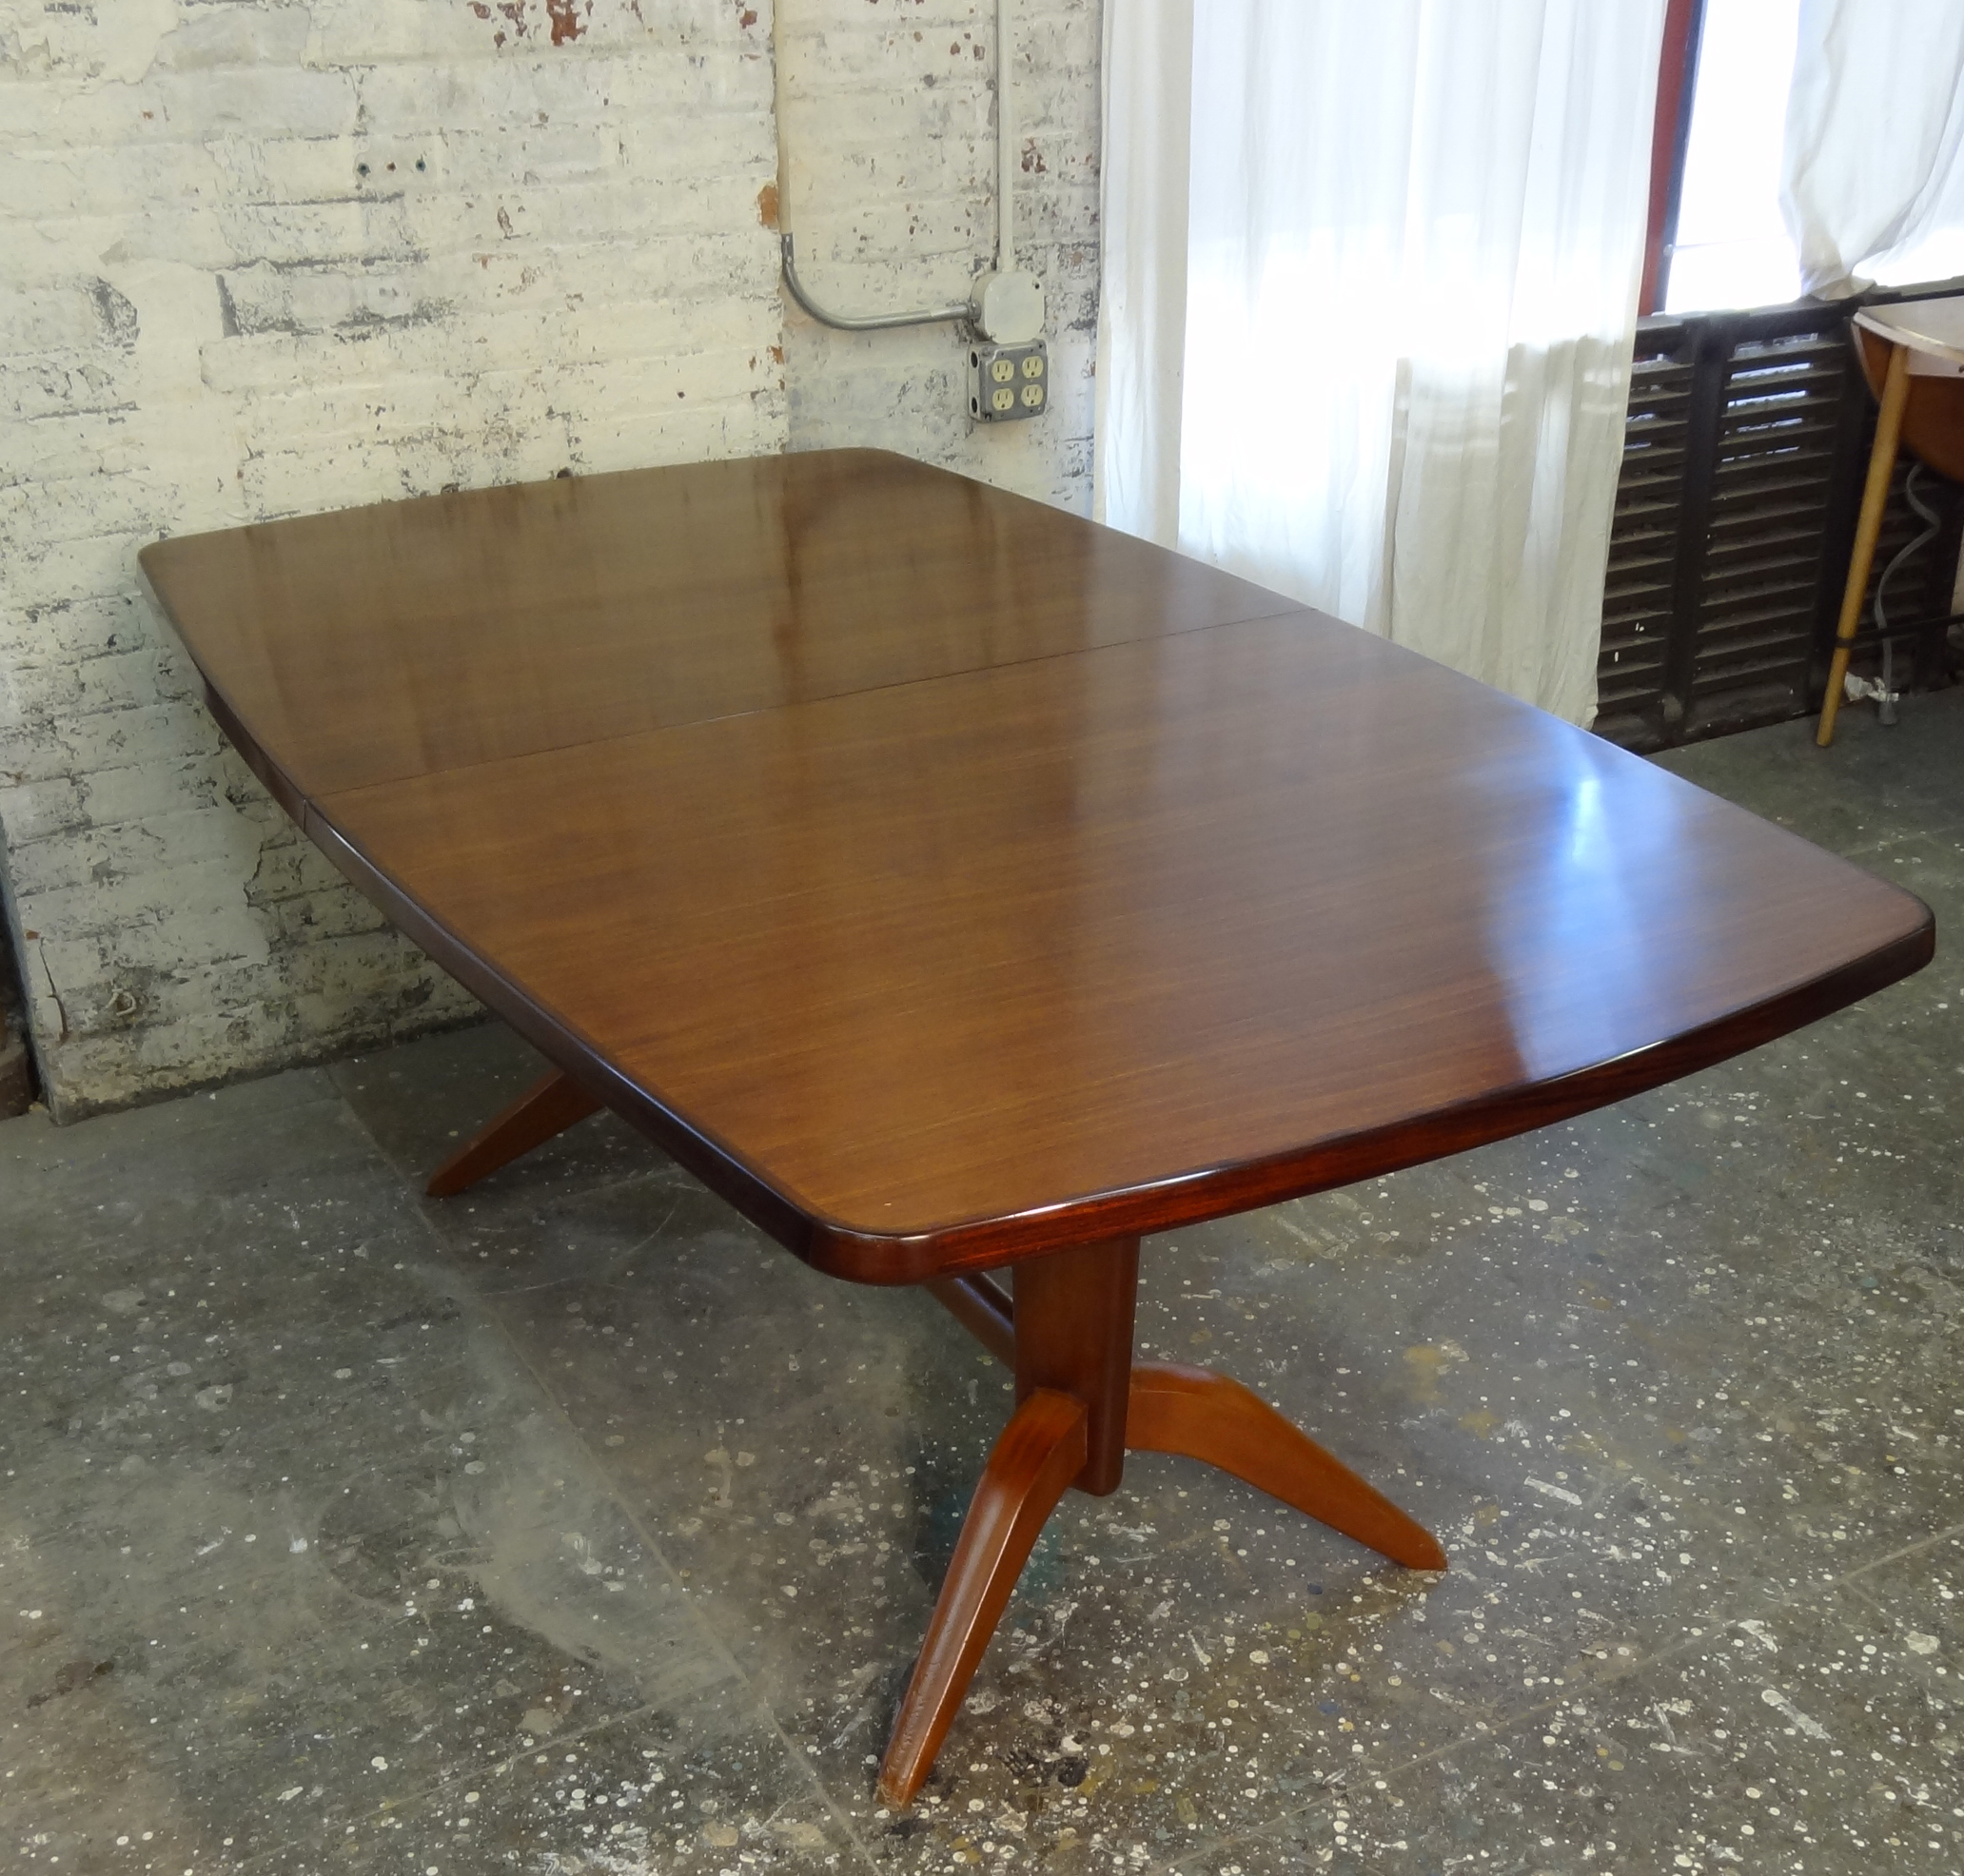 Thumbnail image for Extending Gordon Russell Dining Table